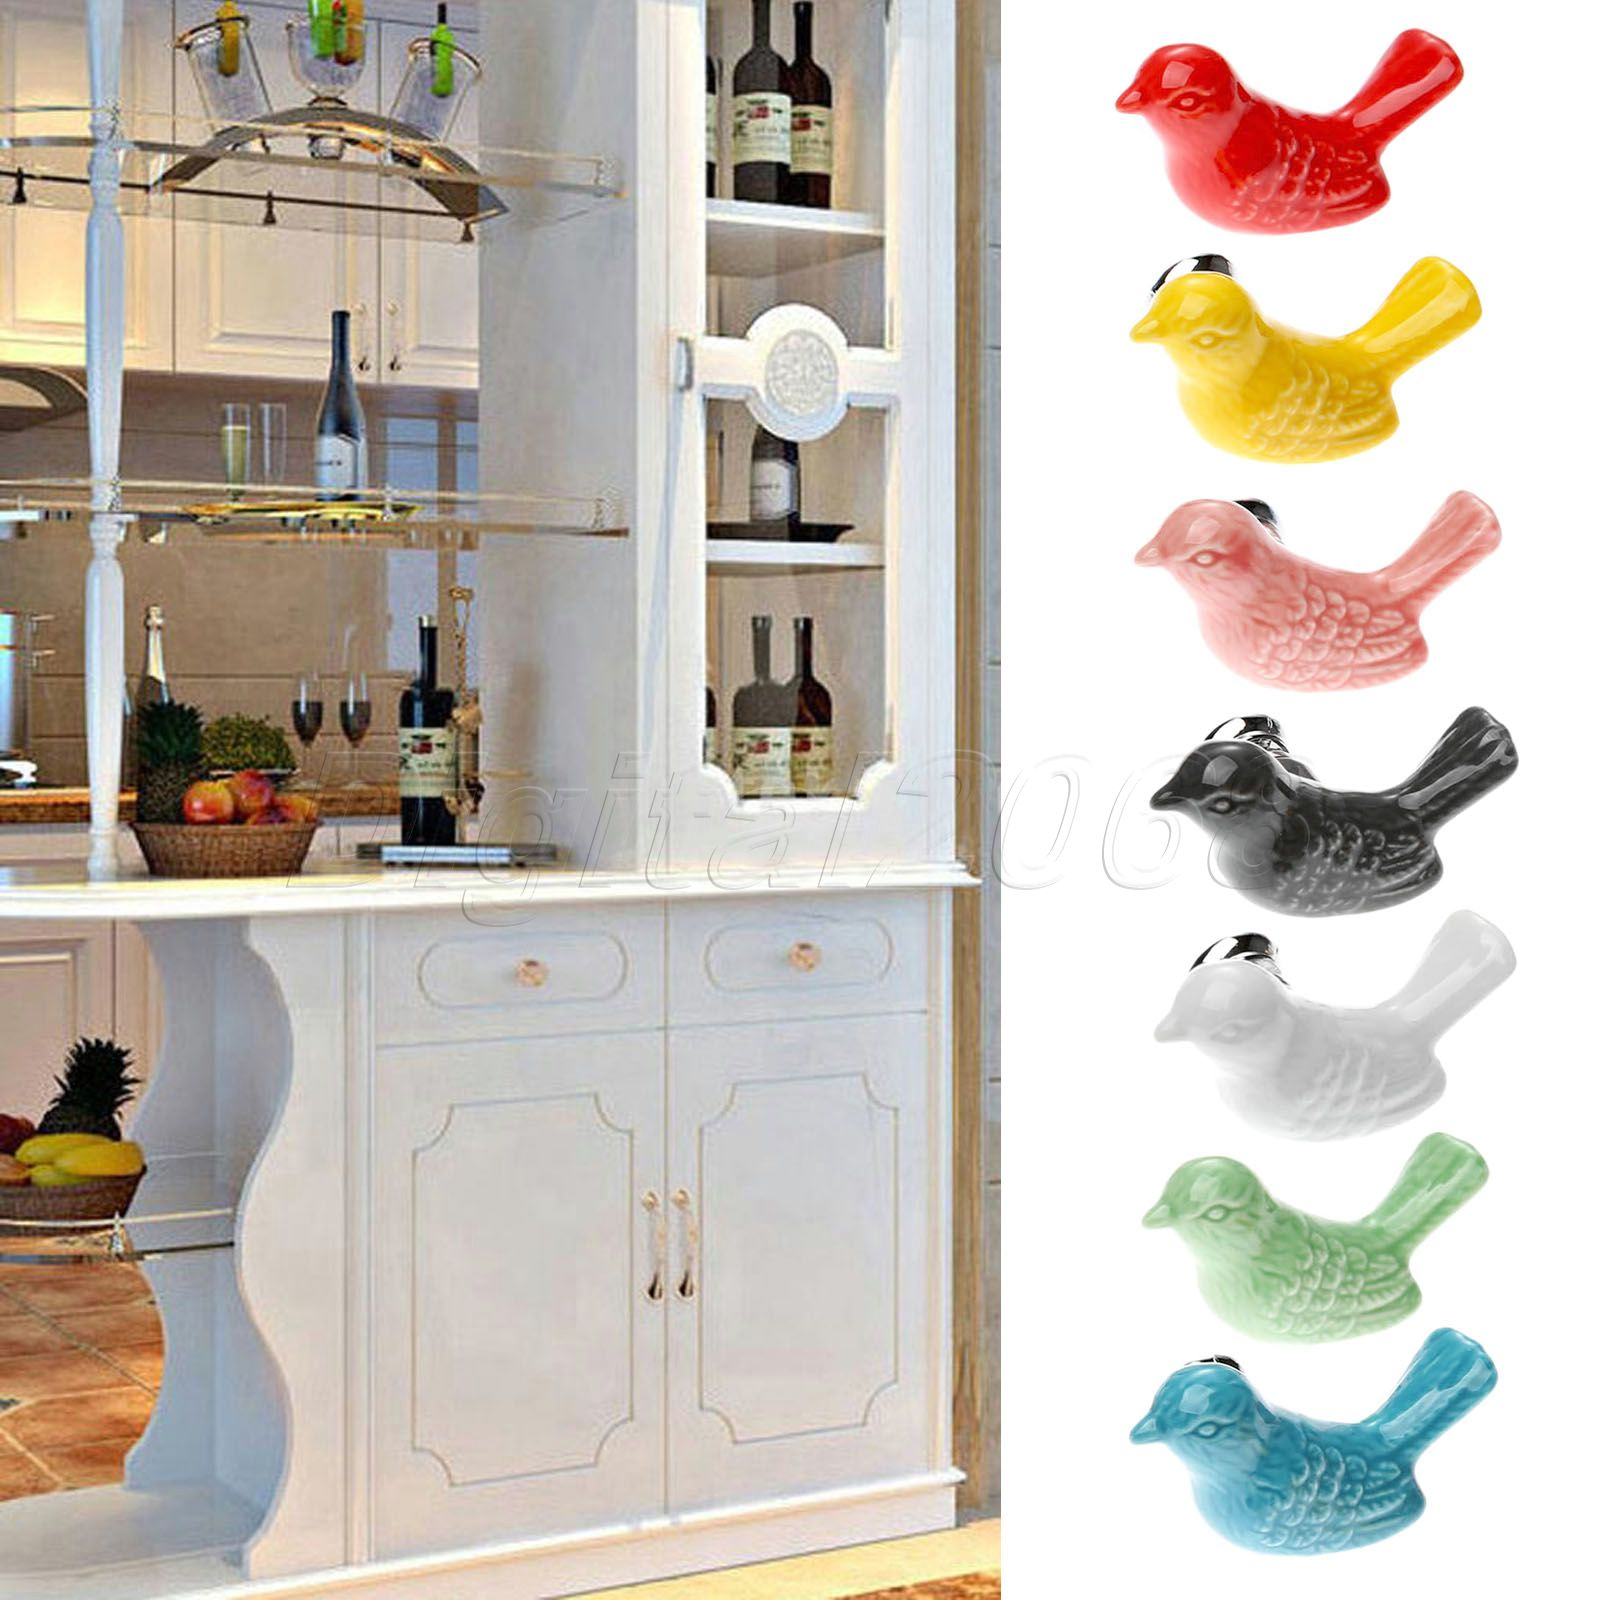 New Hot Ceramic Bird Kitchen Cabinet Cupboard Door Handles Drawer Knobs Wardrobe Pulls Kitchen Furniture Home Pull Handle hot selling ceramic zinc alloy kitchen cabinet furniture knob cupboard door pulls drawer wardrobe knobs handles 5pcs lot